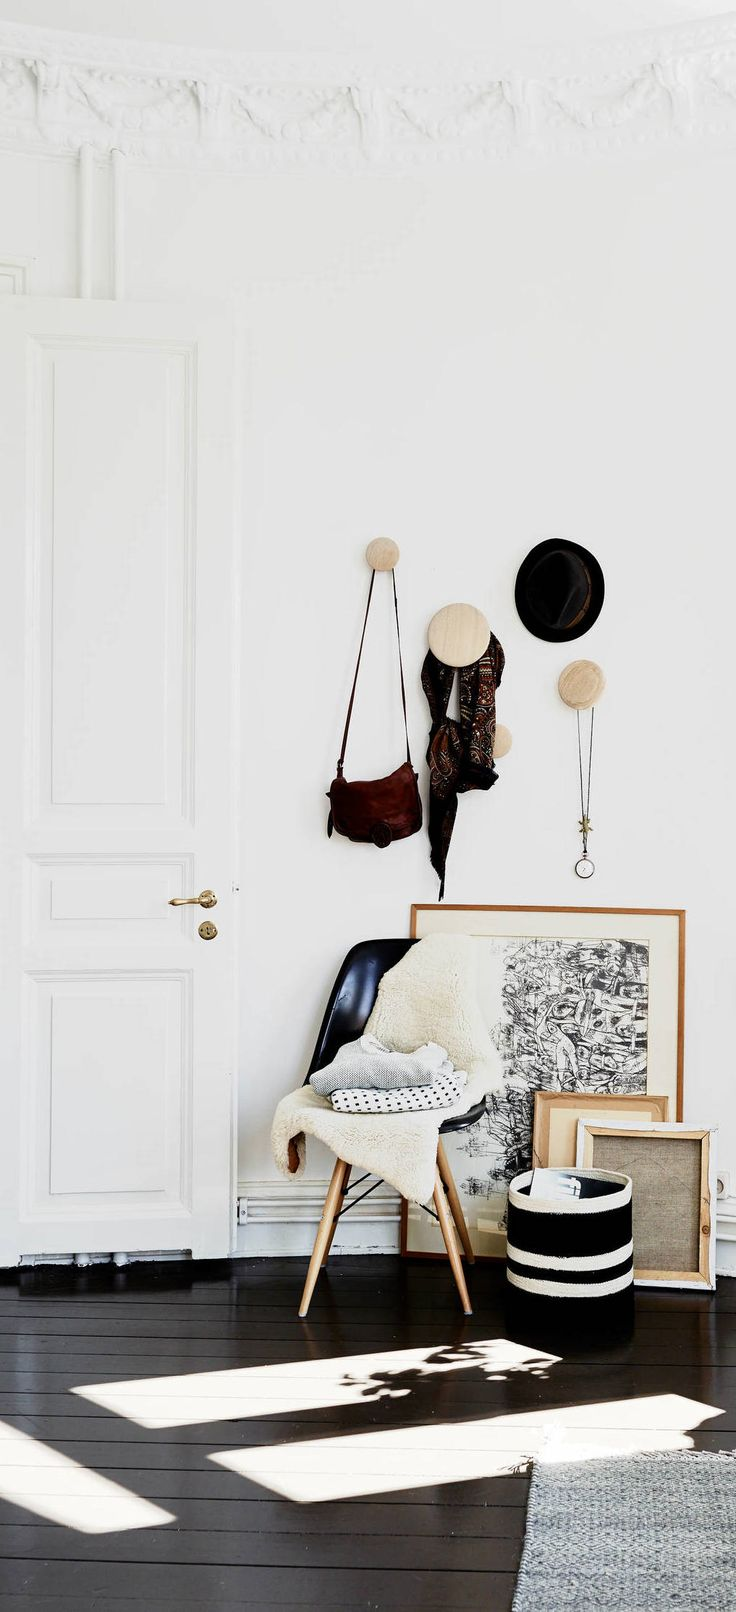 The Dots hooks by Muuto via Coco Lapine Design blog.